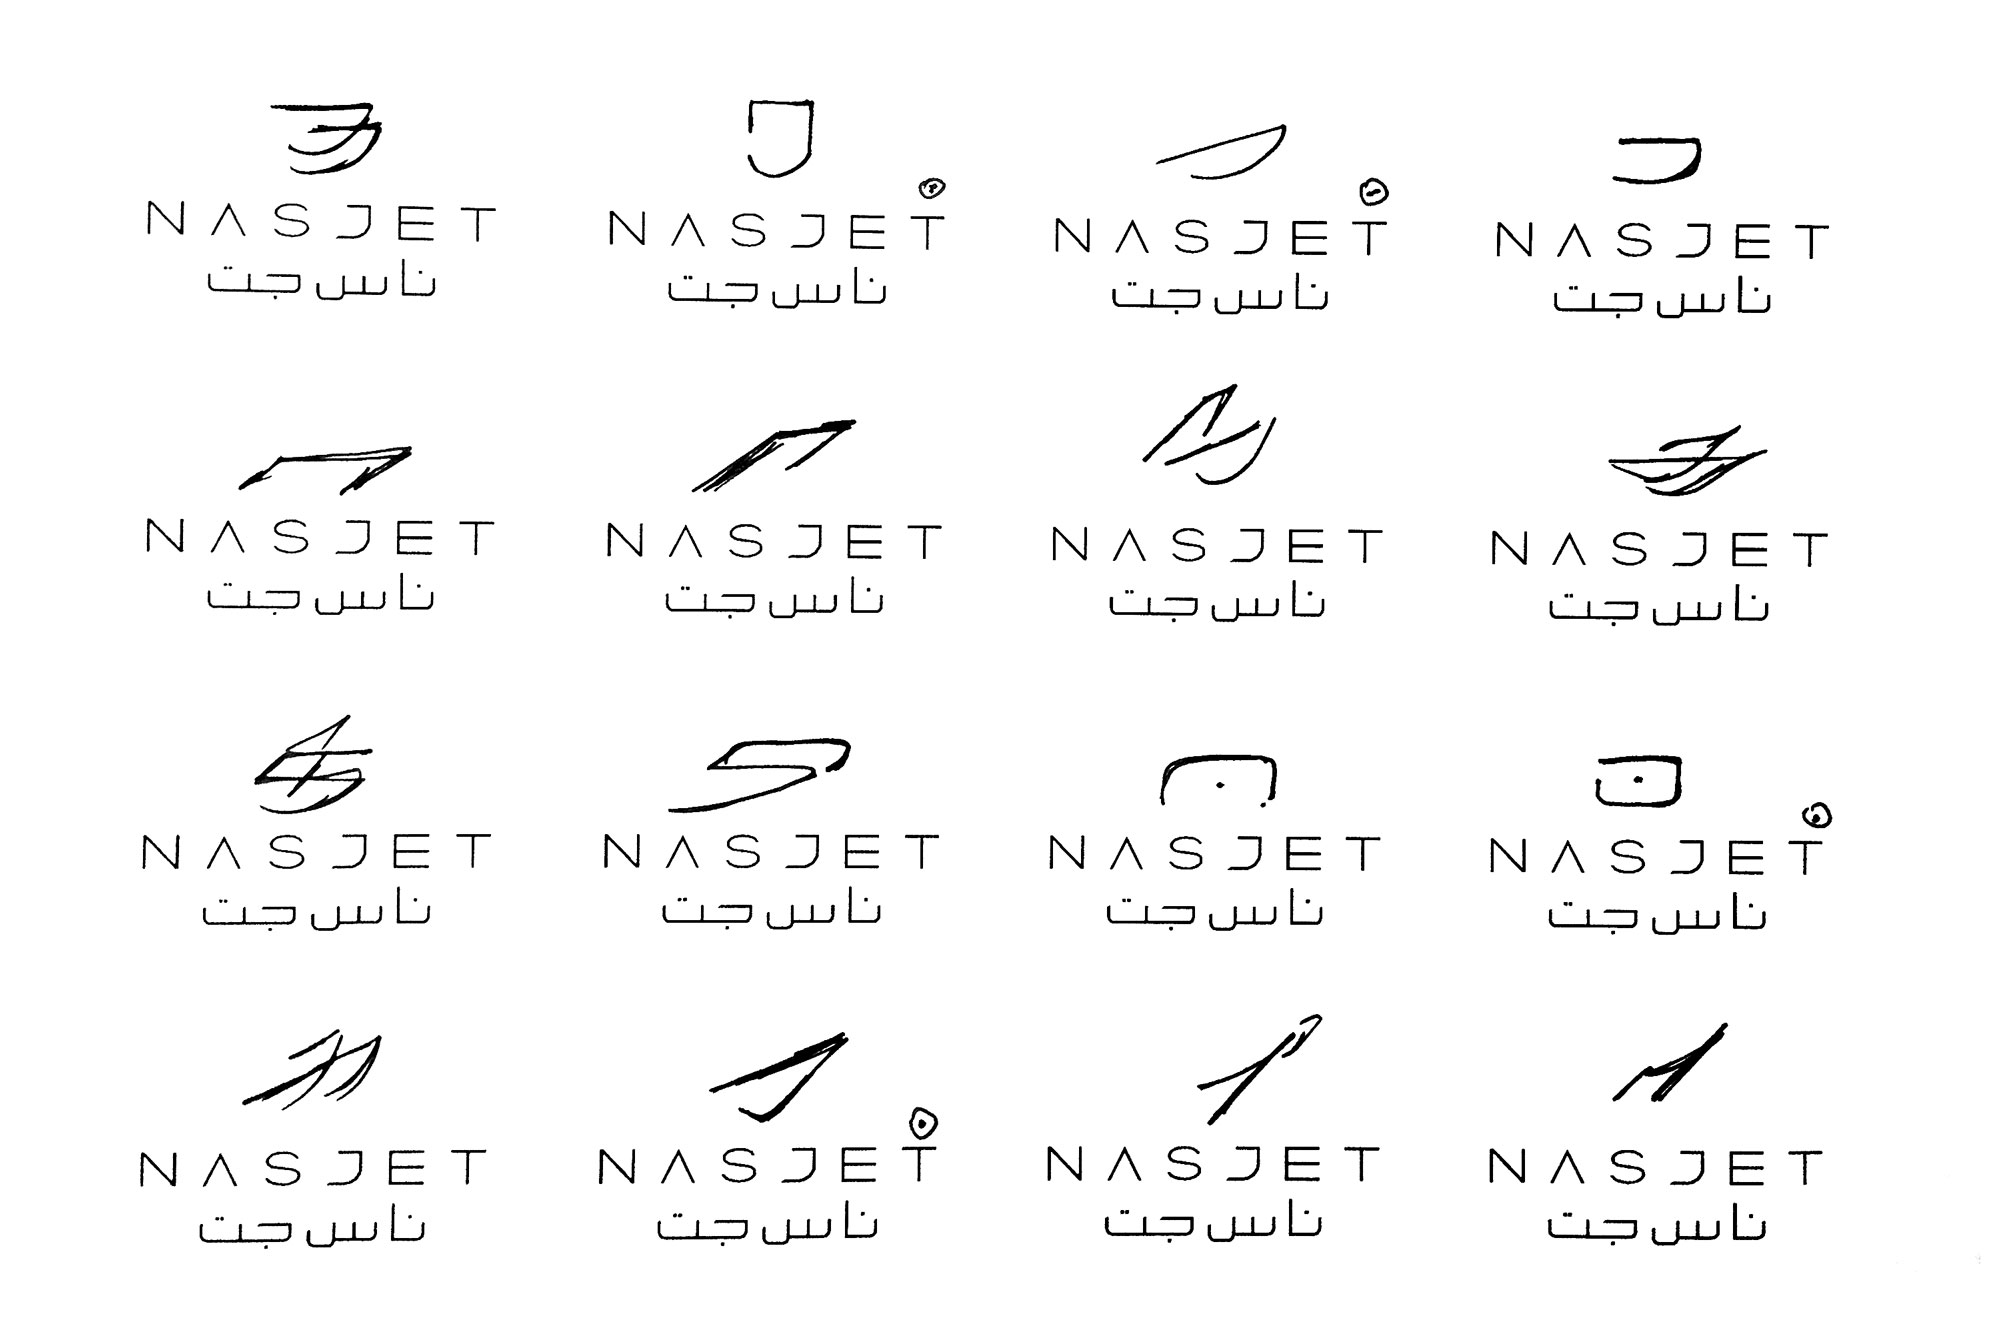 NasJet-Work-By-YaStudio-04b